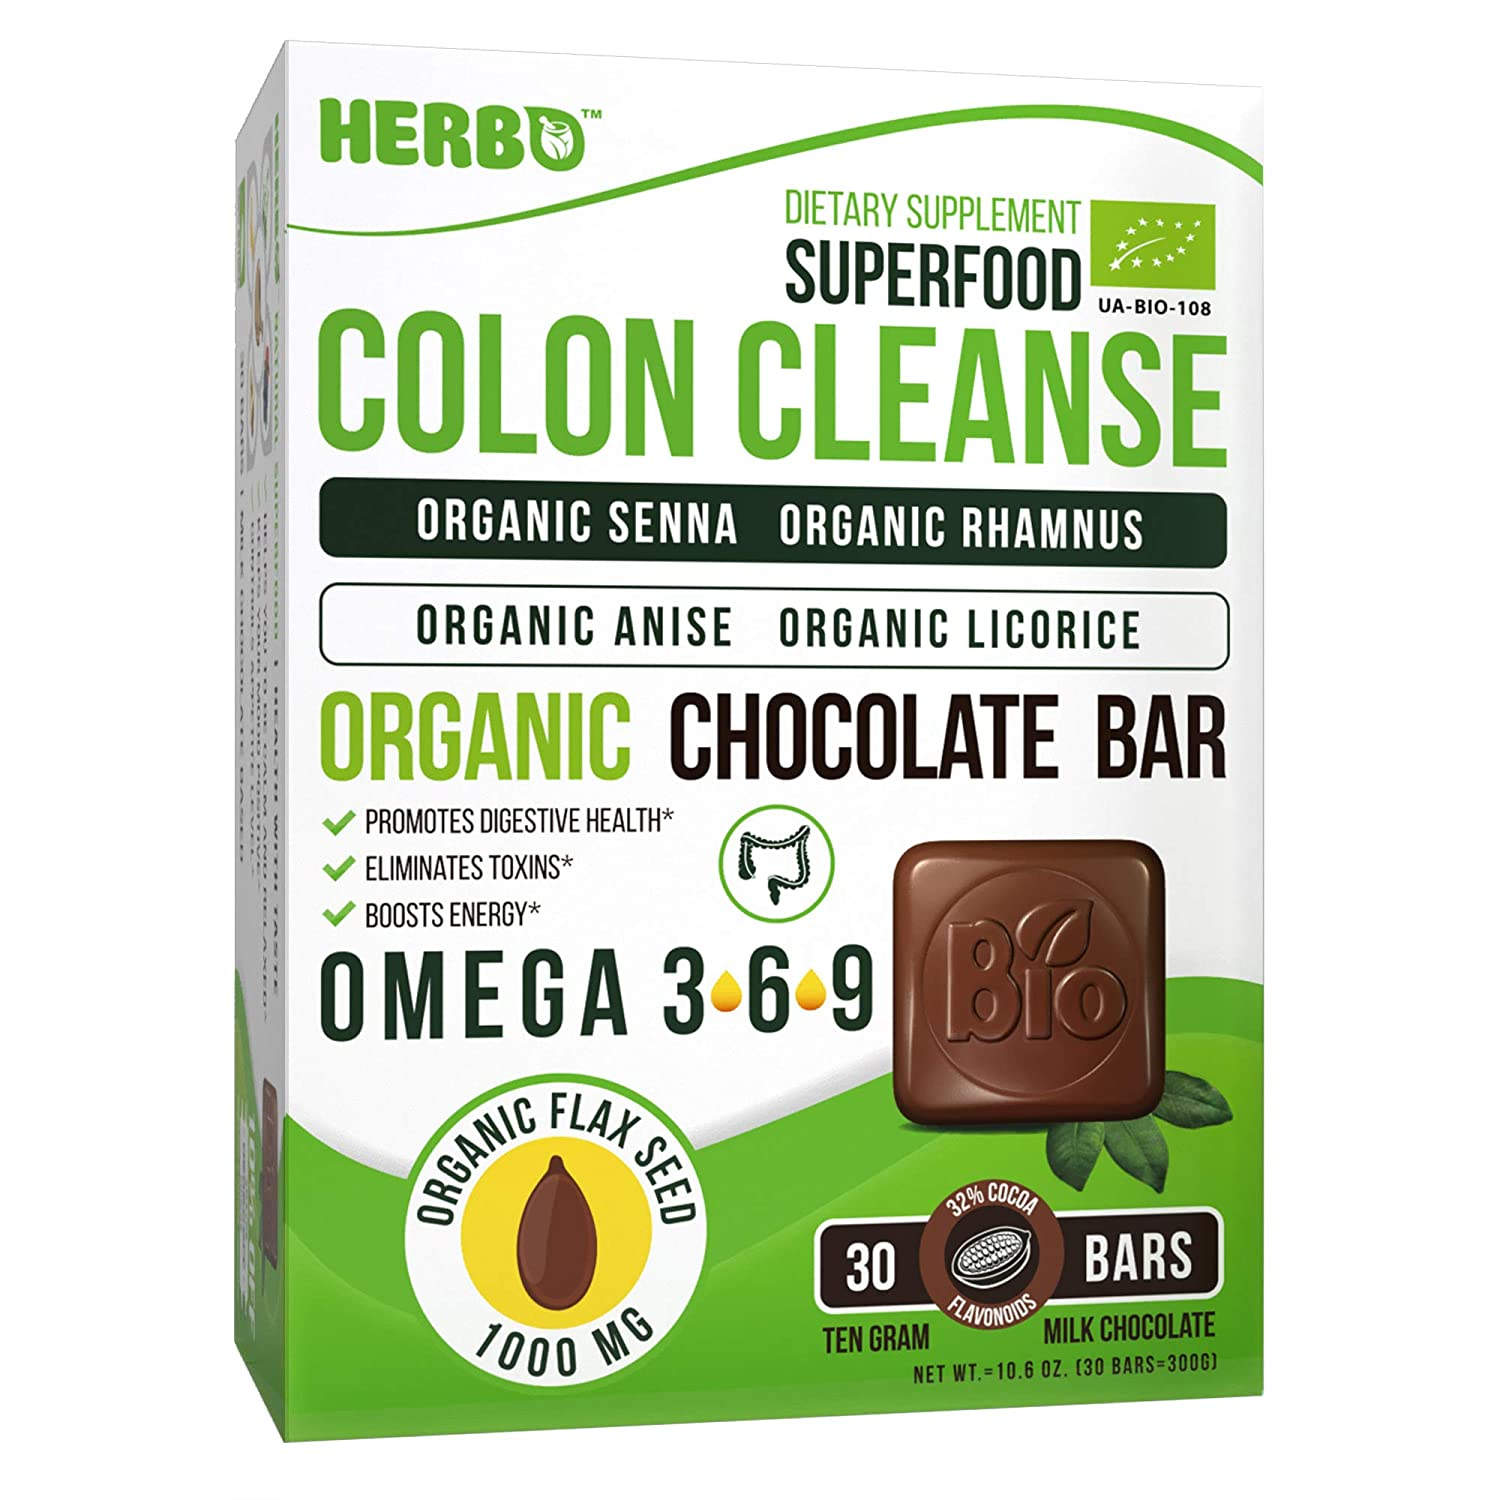 Herbo Superfood Colon Cleanse Organic Blend in Milk Chocolate – Best Healthy Daily Colon Cleanse, Instant and Gentle, Weight Loss – Delicious 30 Bars with Senna, Anise, Rhamnus, Licorice and Omega 3